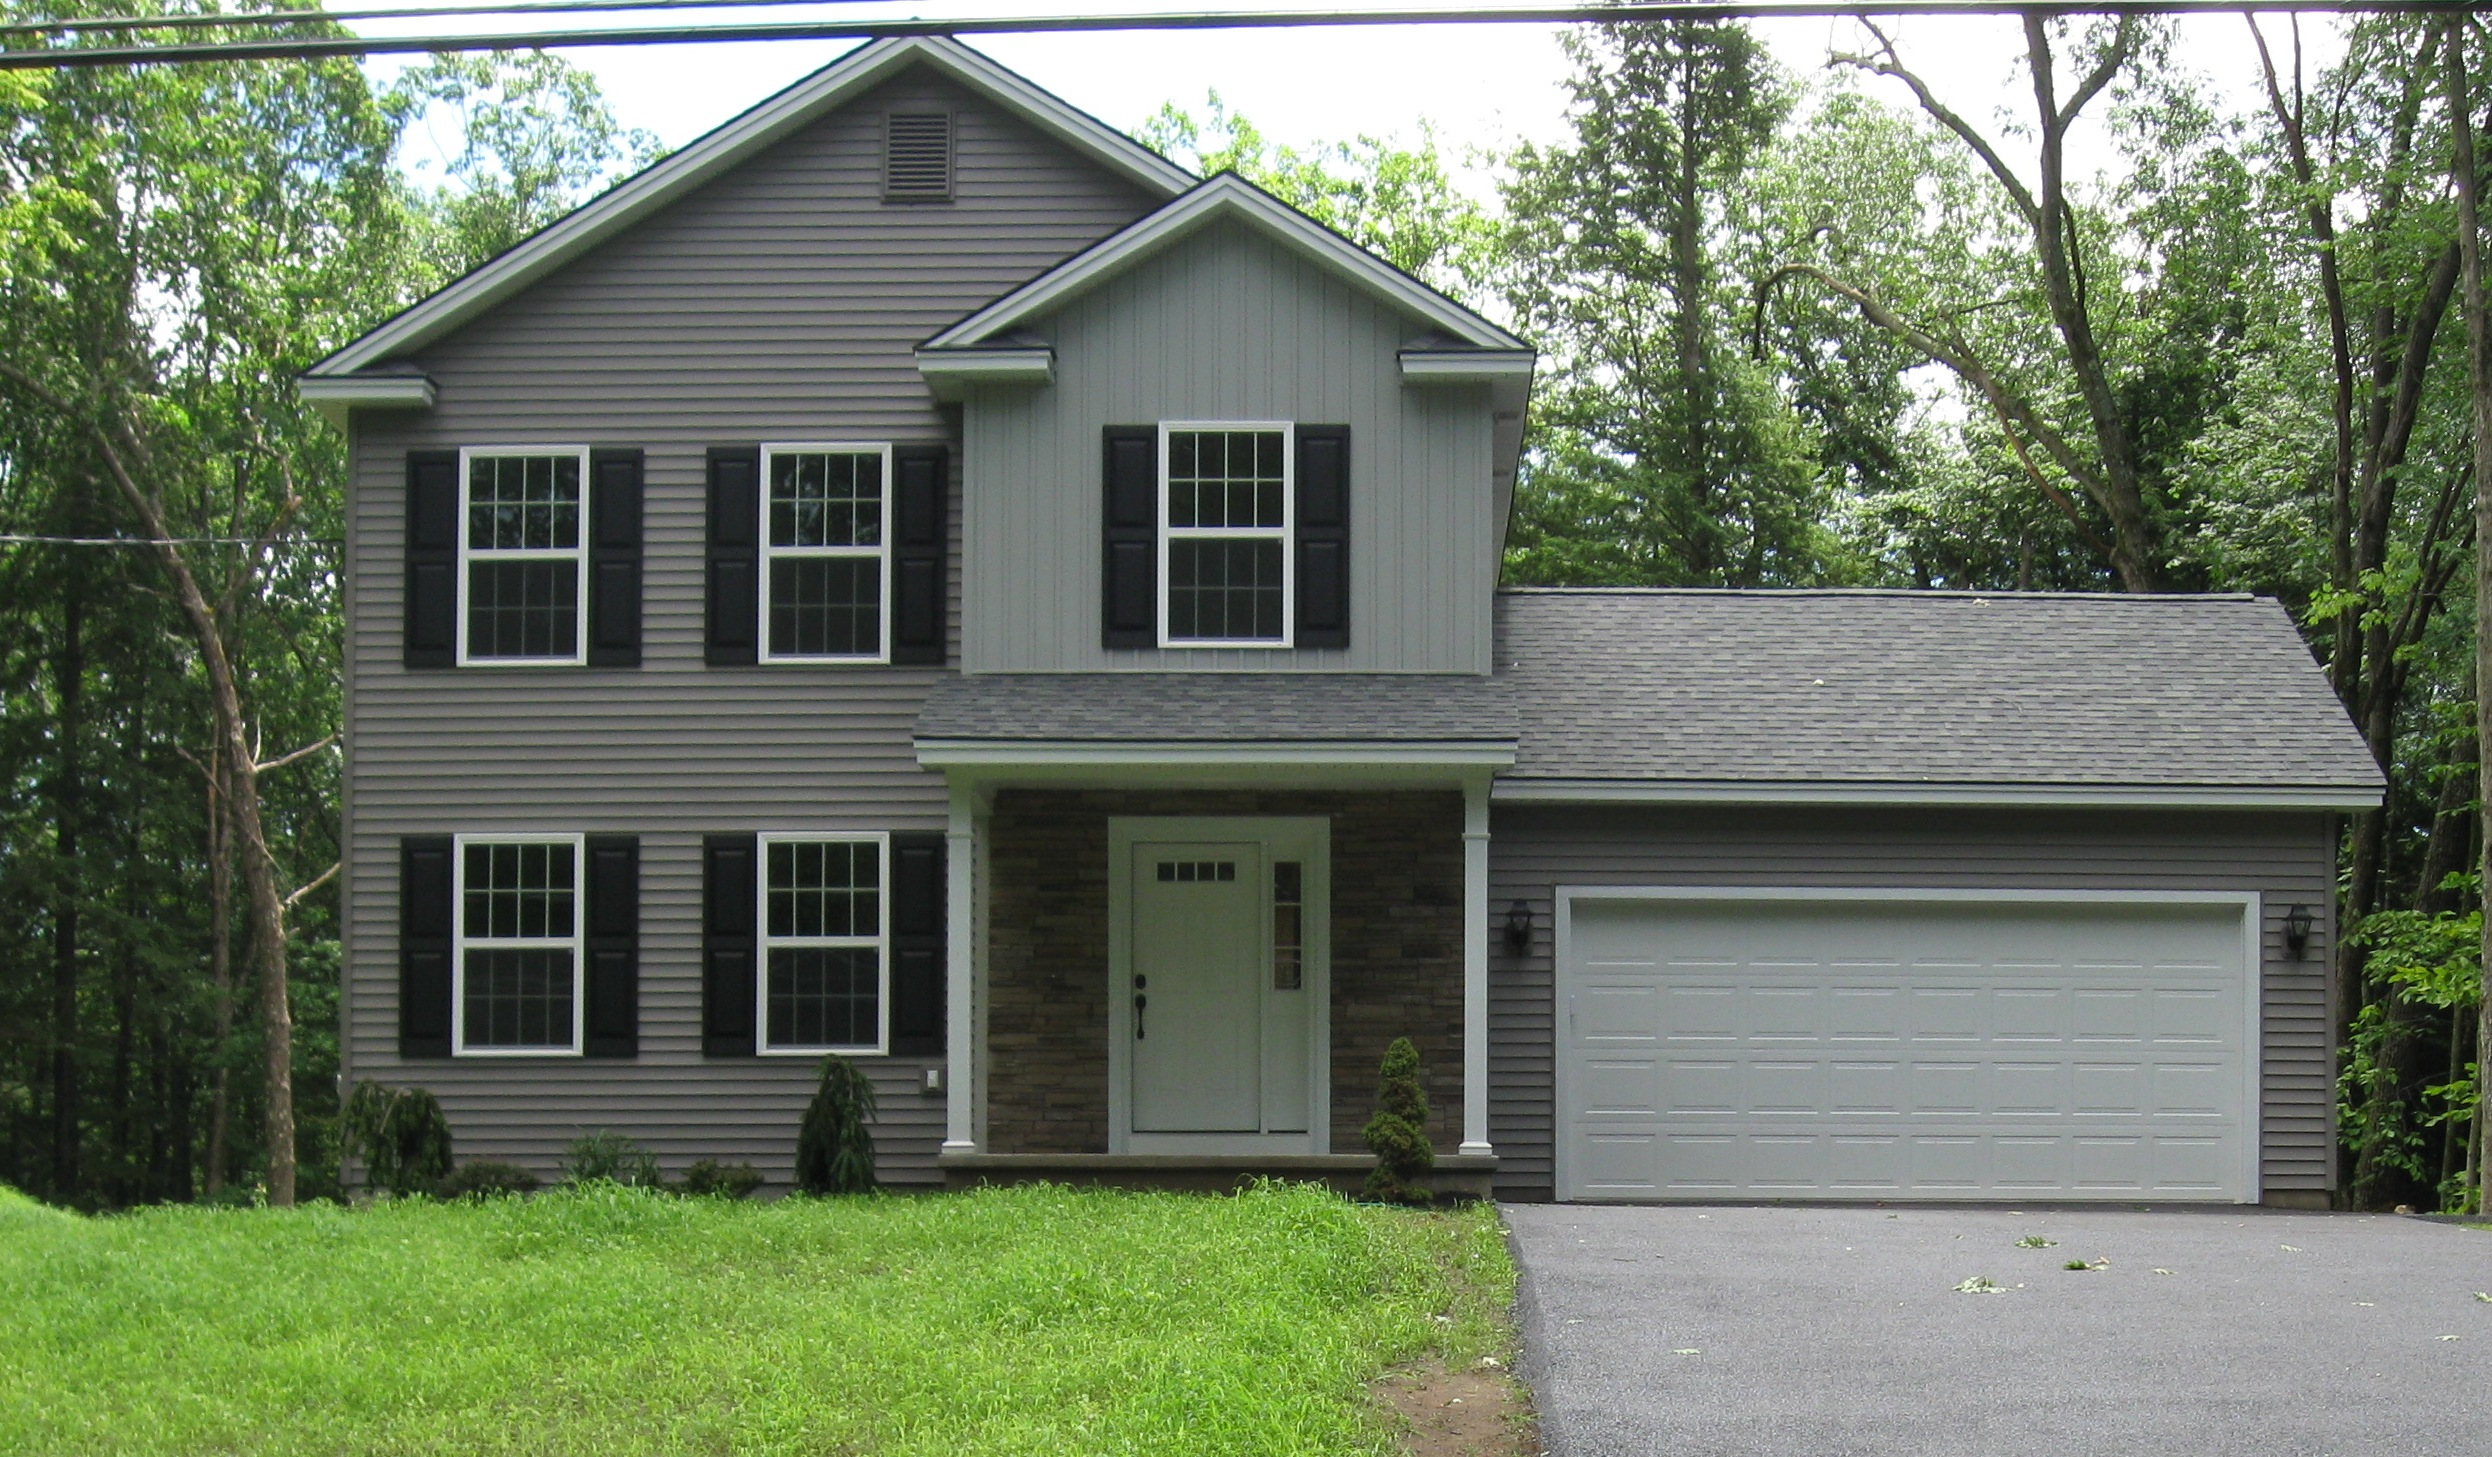 Colonial Model at South Woods New Homes By Cerrone Builders in South Glens Falls NY